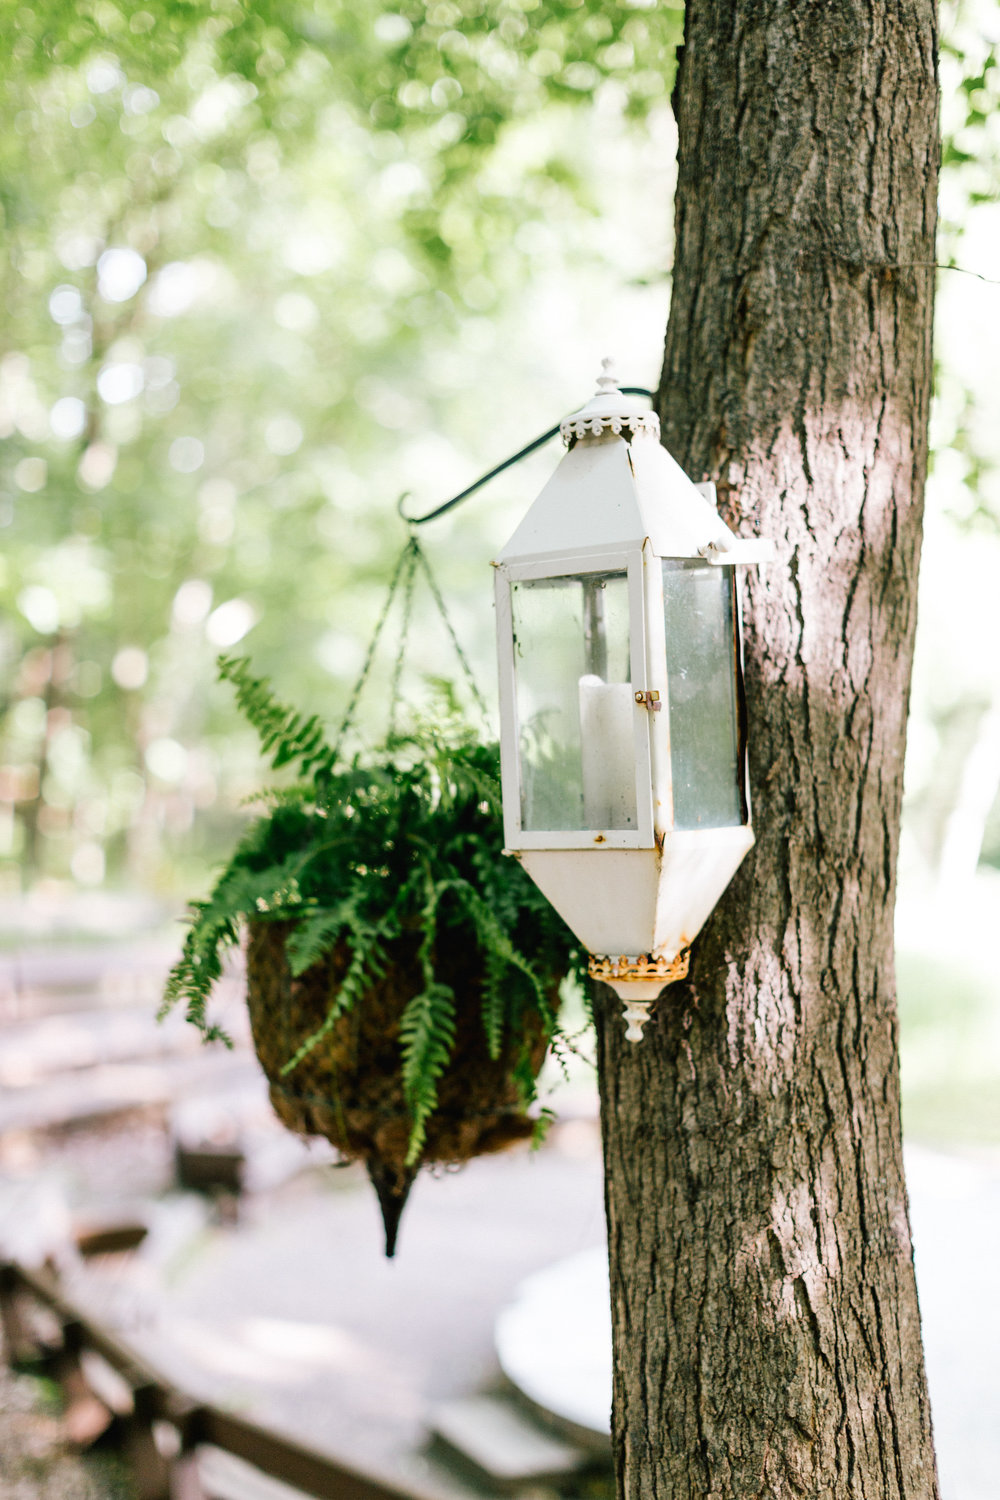 Allison_Hopperstad_Photography_Acowsay_Wedding_Details.JPG